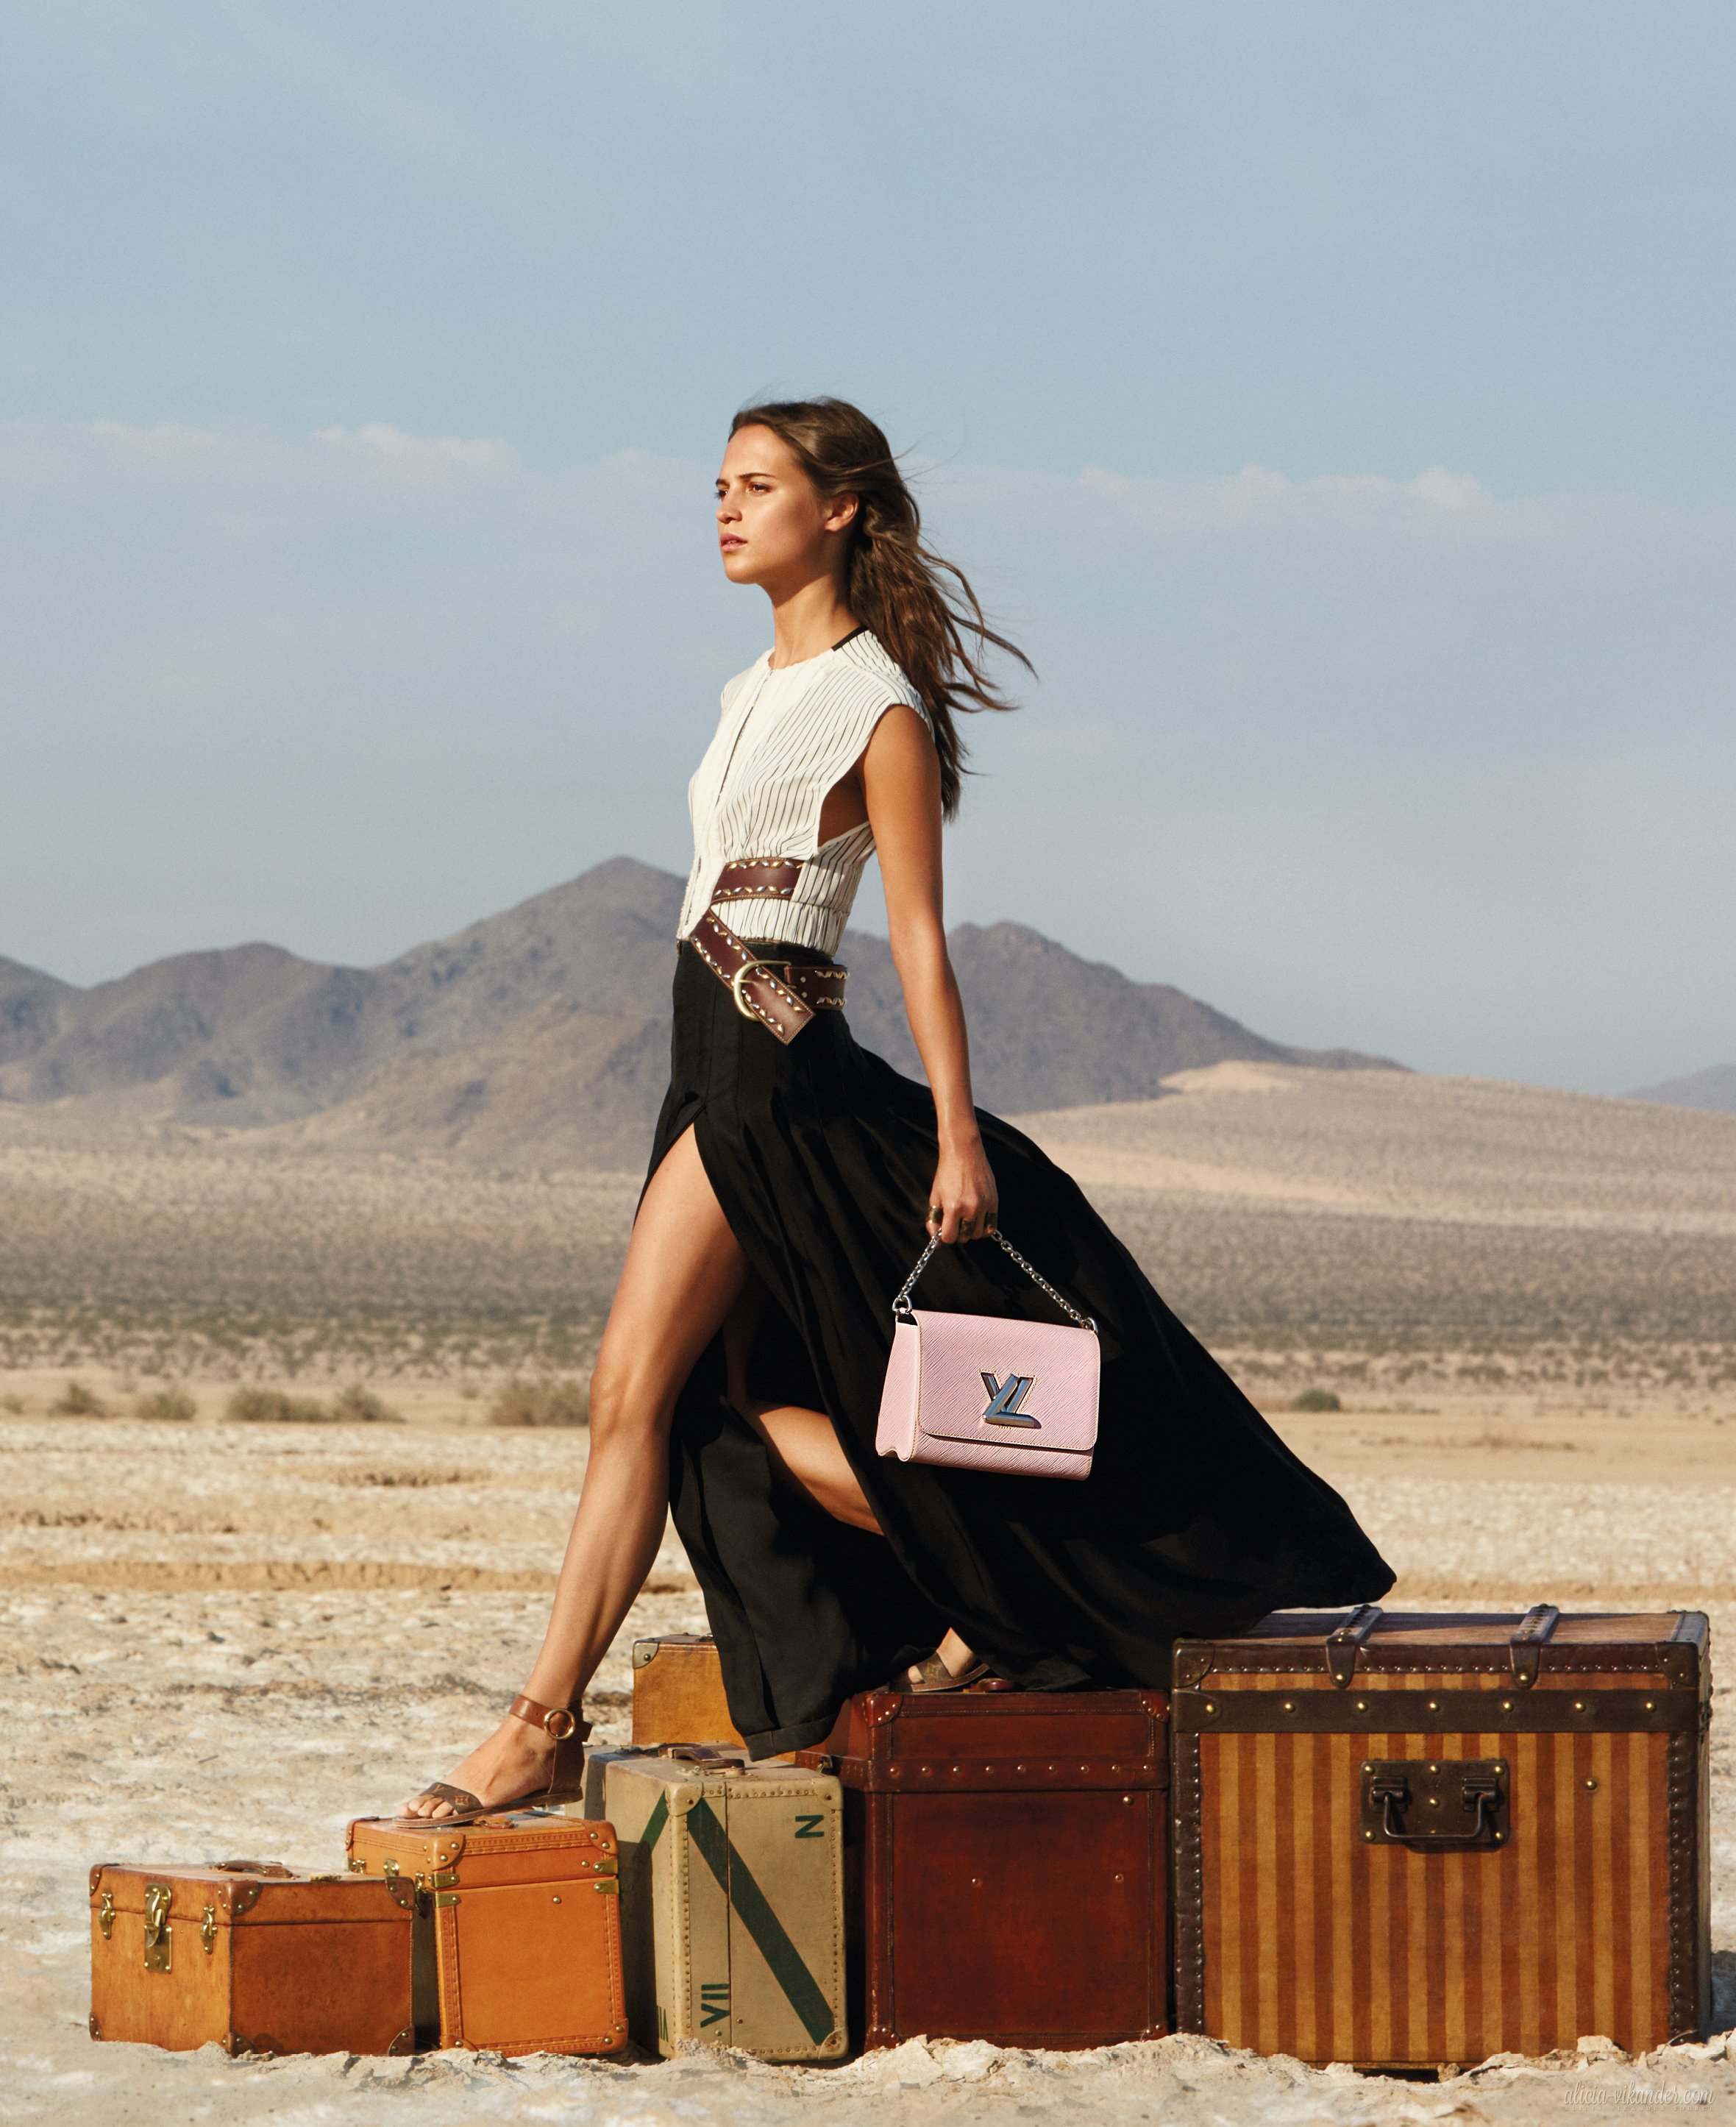 Louis Vuitton (Spirit of Travel 2015 campaign)